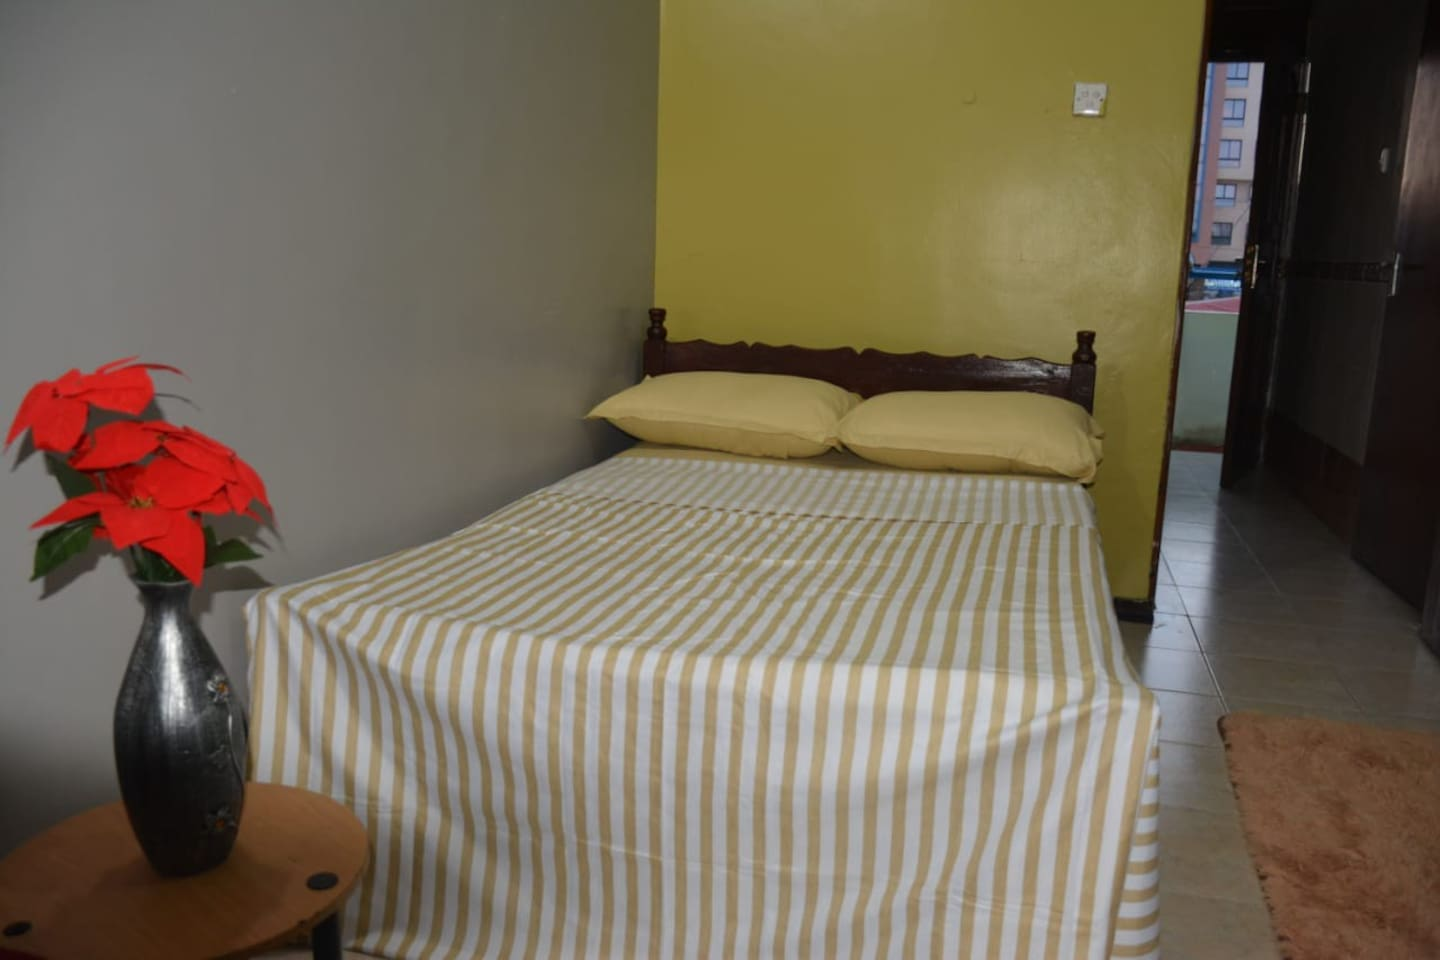 Bedroom with sufficient space, there is a balcony you can relax after sound sleep